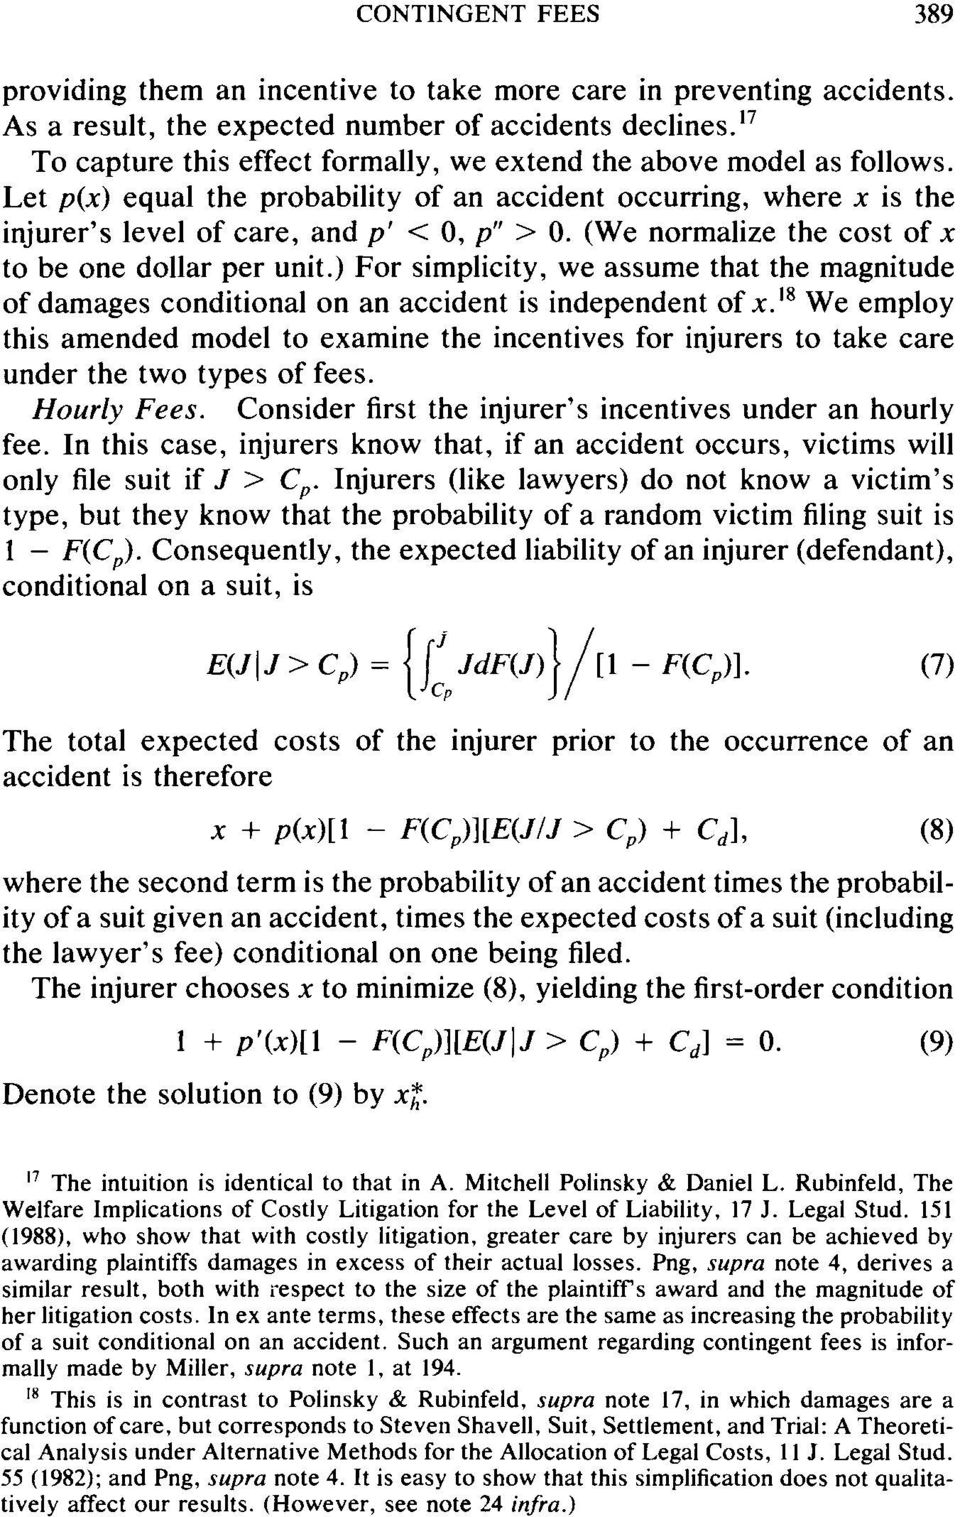 (We normalize the cost of x to be one dollar per unit.) For simplicity, we assume that the magnitude of damages conditional on an accident is independent of x.